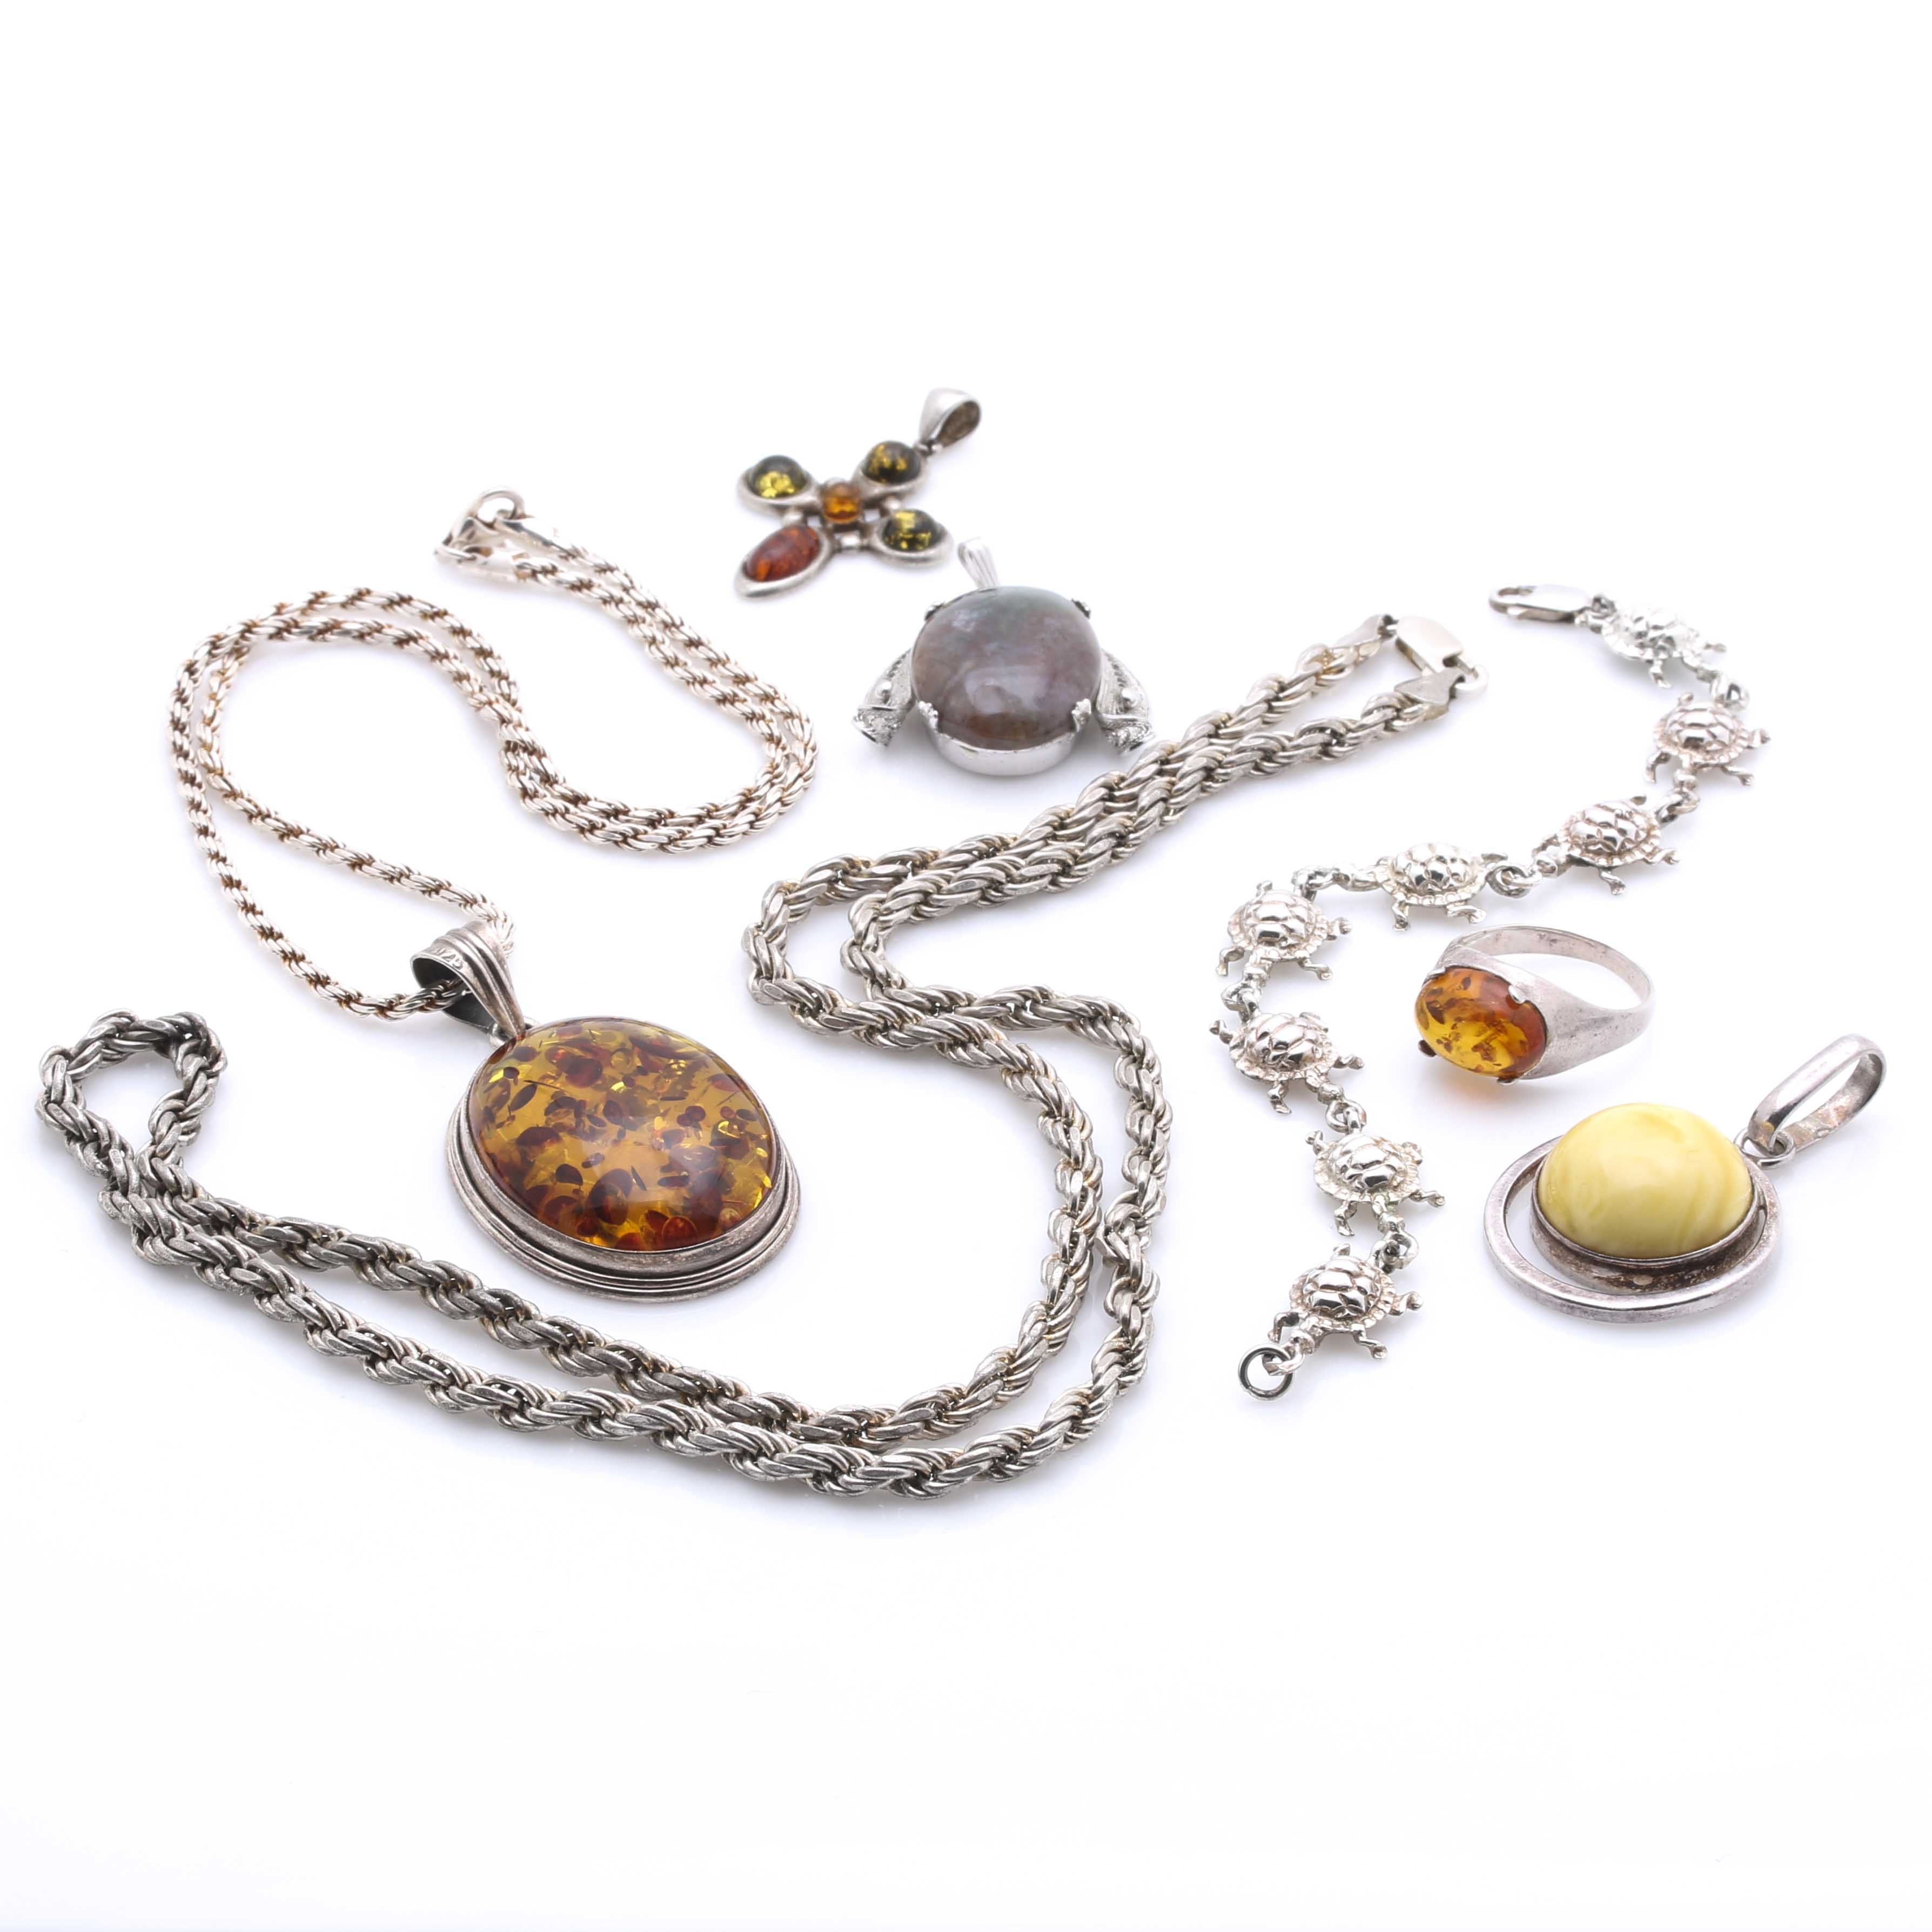 Sterling Silver and Gemstone Jewelry Assortment